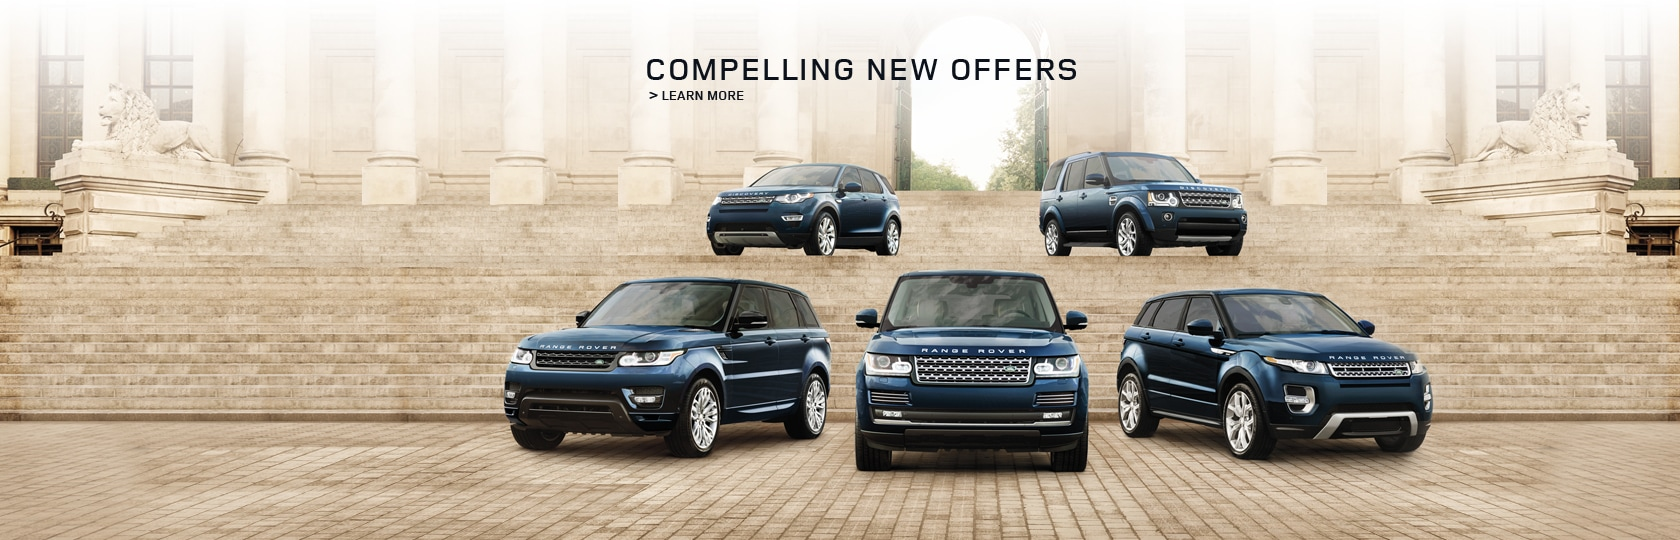 Land Rover Of Peoria Peoria Il Luxury Cars And Sport